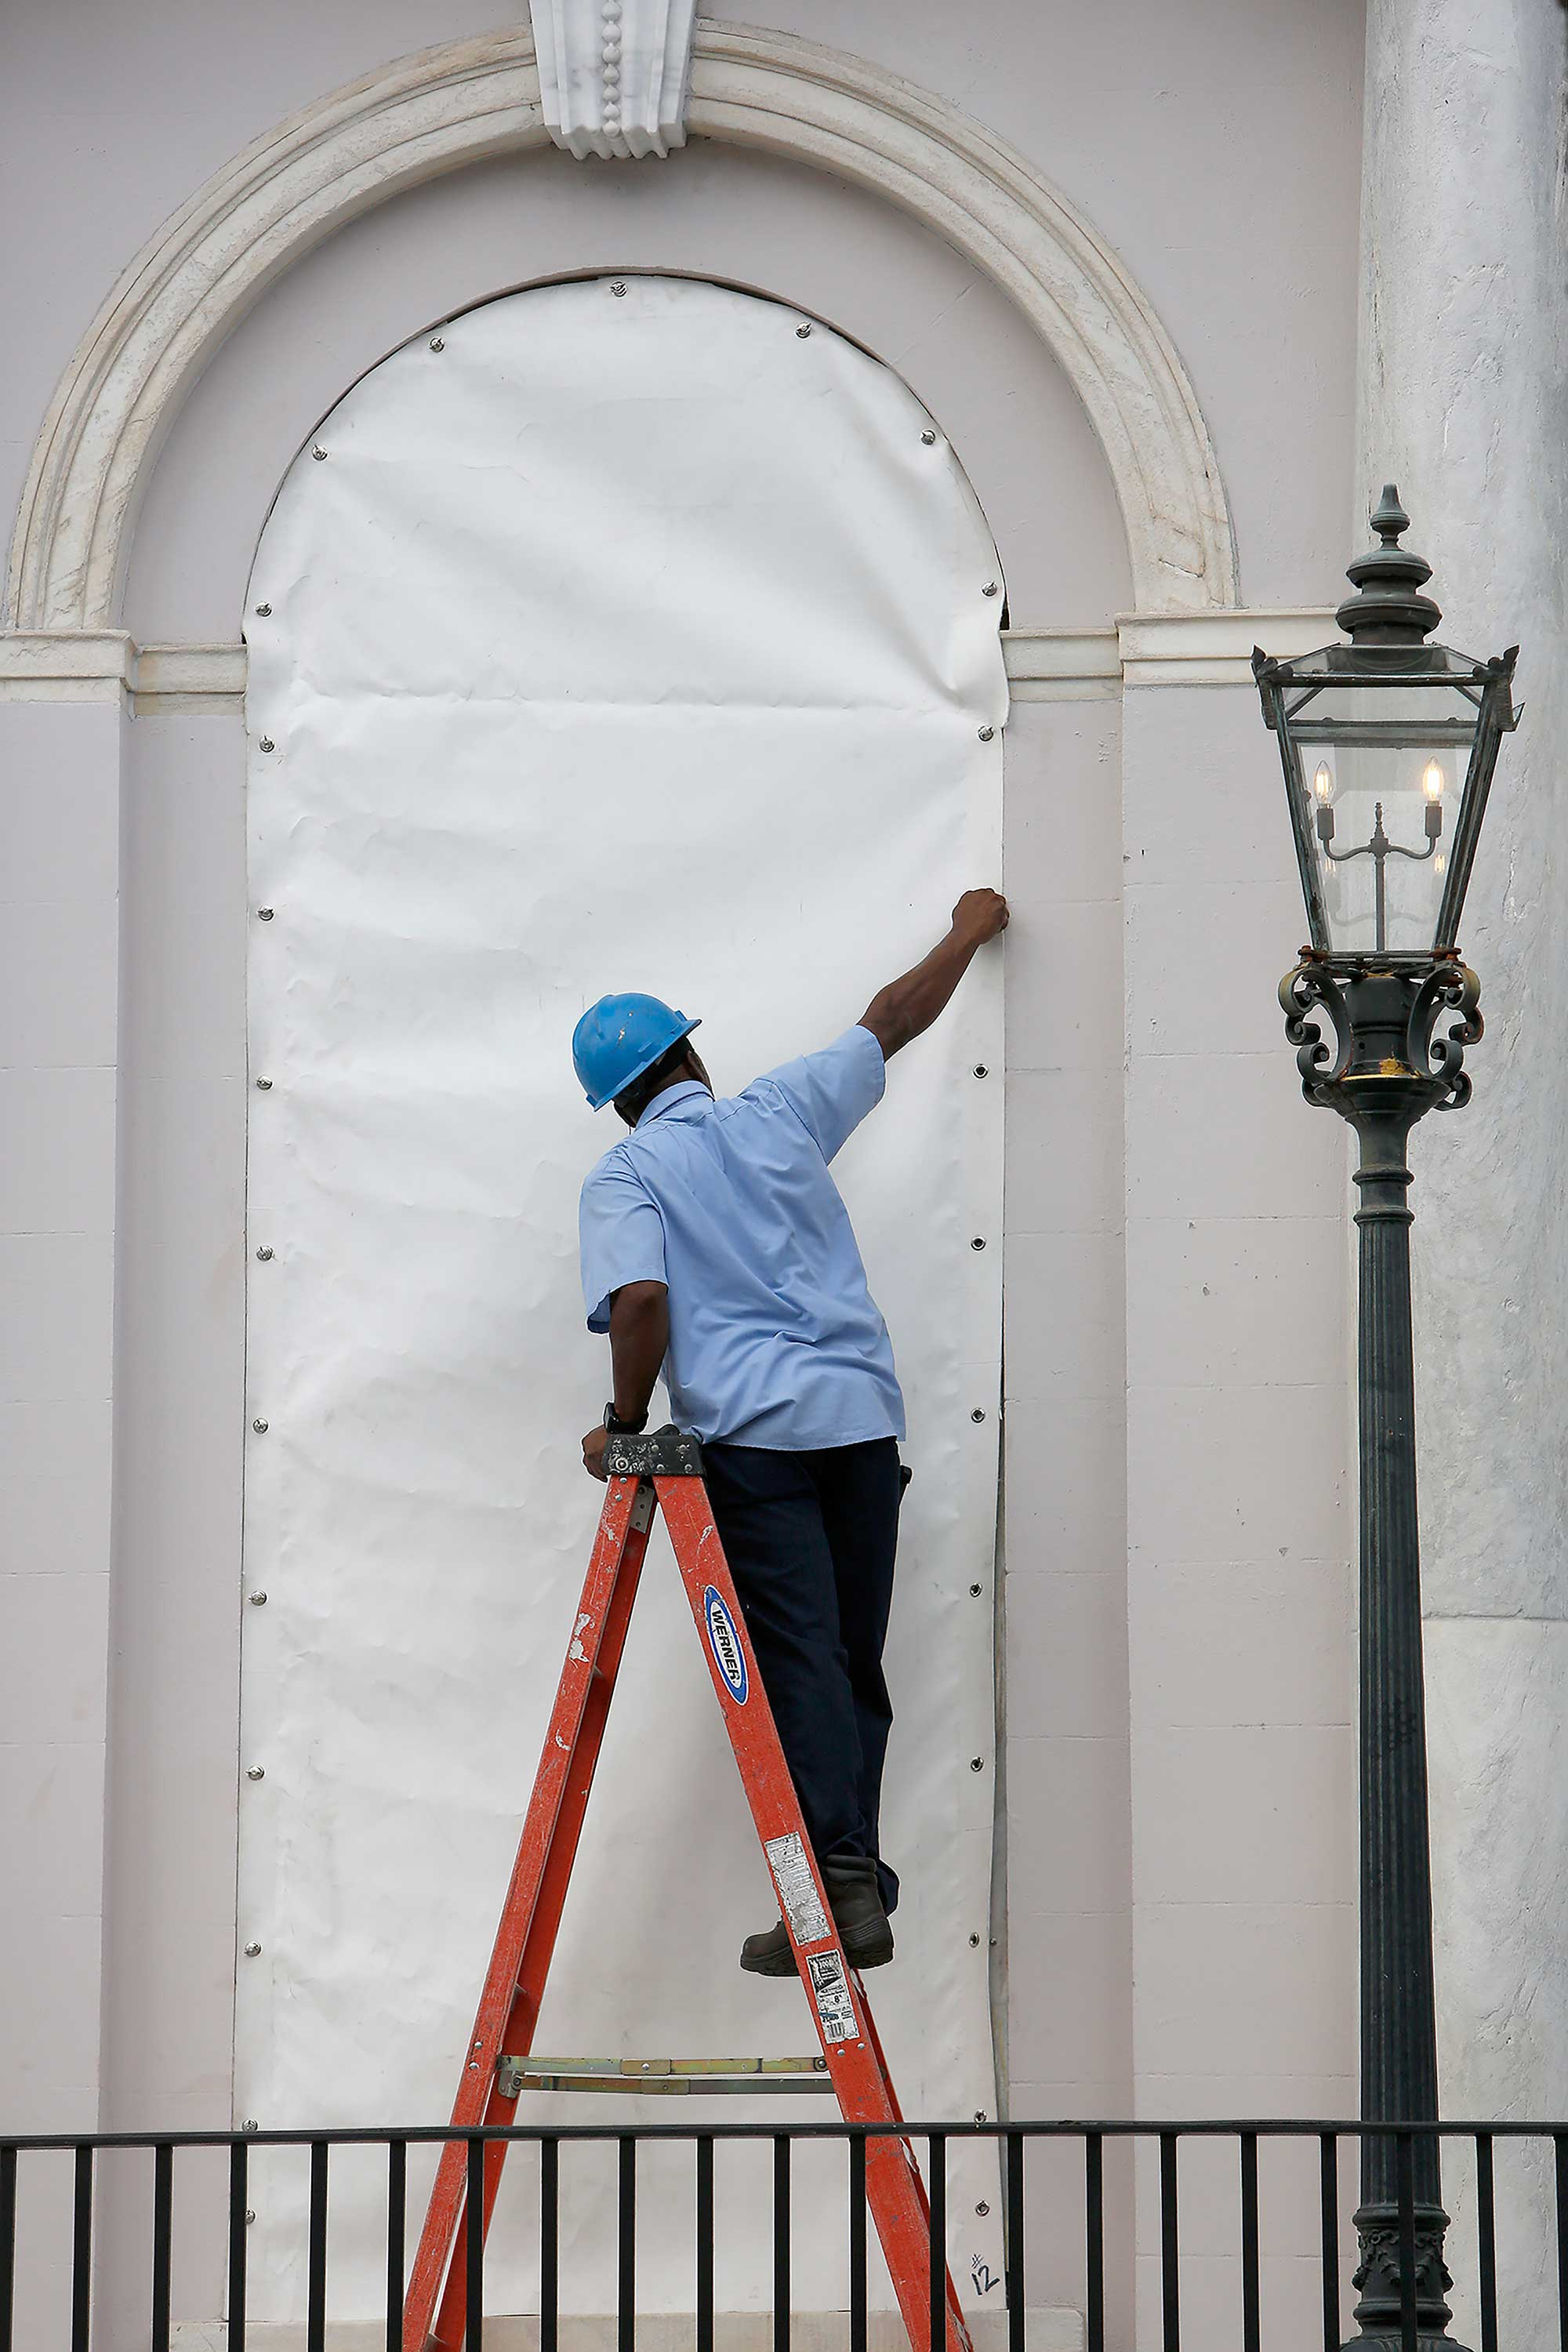 <div class='meta'><div class='origin-logo' data-origin='none'></div><span class='caption-text' data-credit='Mic Smith/AP Photo'>A worker covers a window at Charleston City Hall in Charleston, S.C.</span></div>